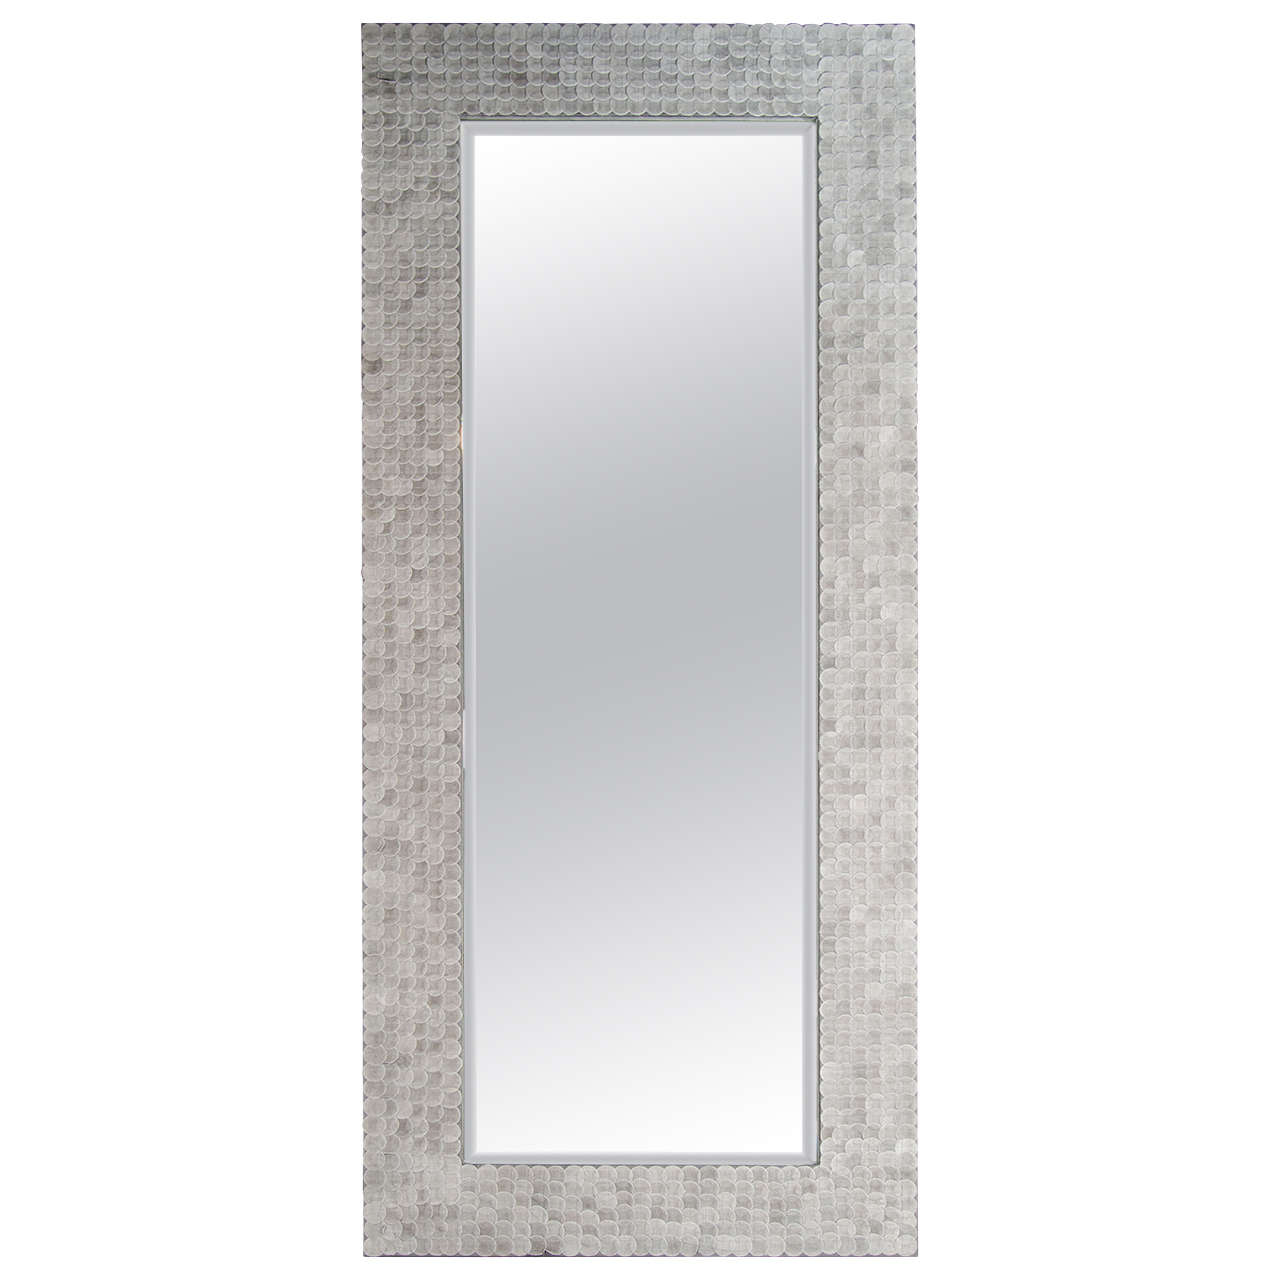 Black framed full length mirror excellent full image for for Full length mirror black frame